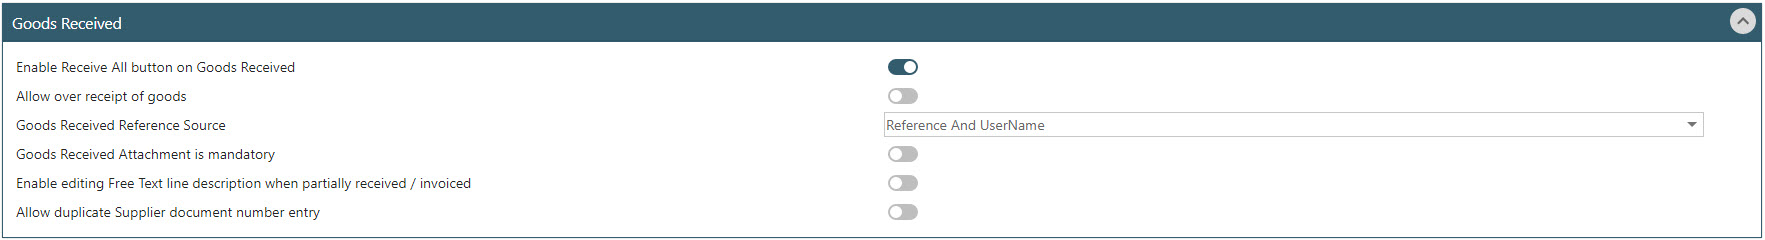 Sicon WAP Purchase Requisitions Help and User Guide - Requisition HUG Section 25.3 Image 1